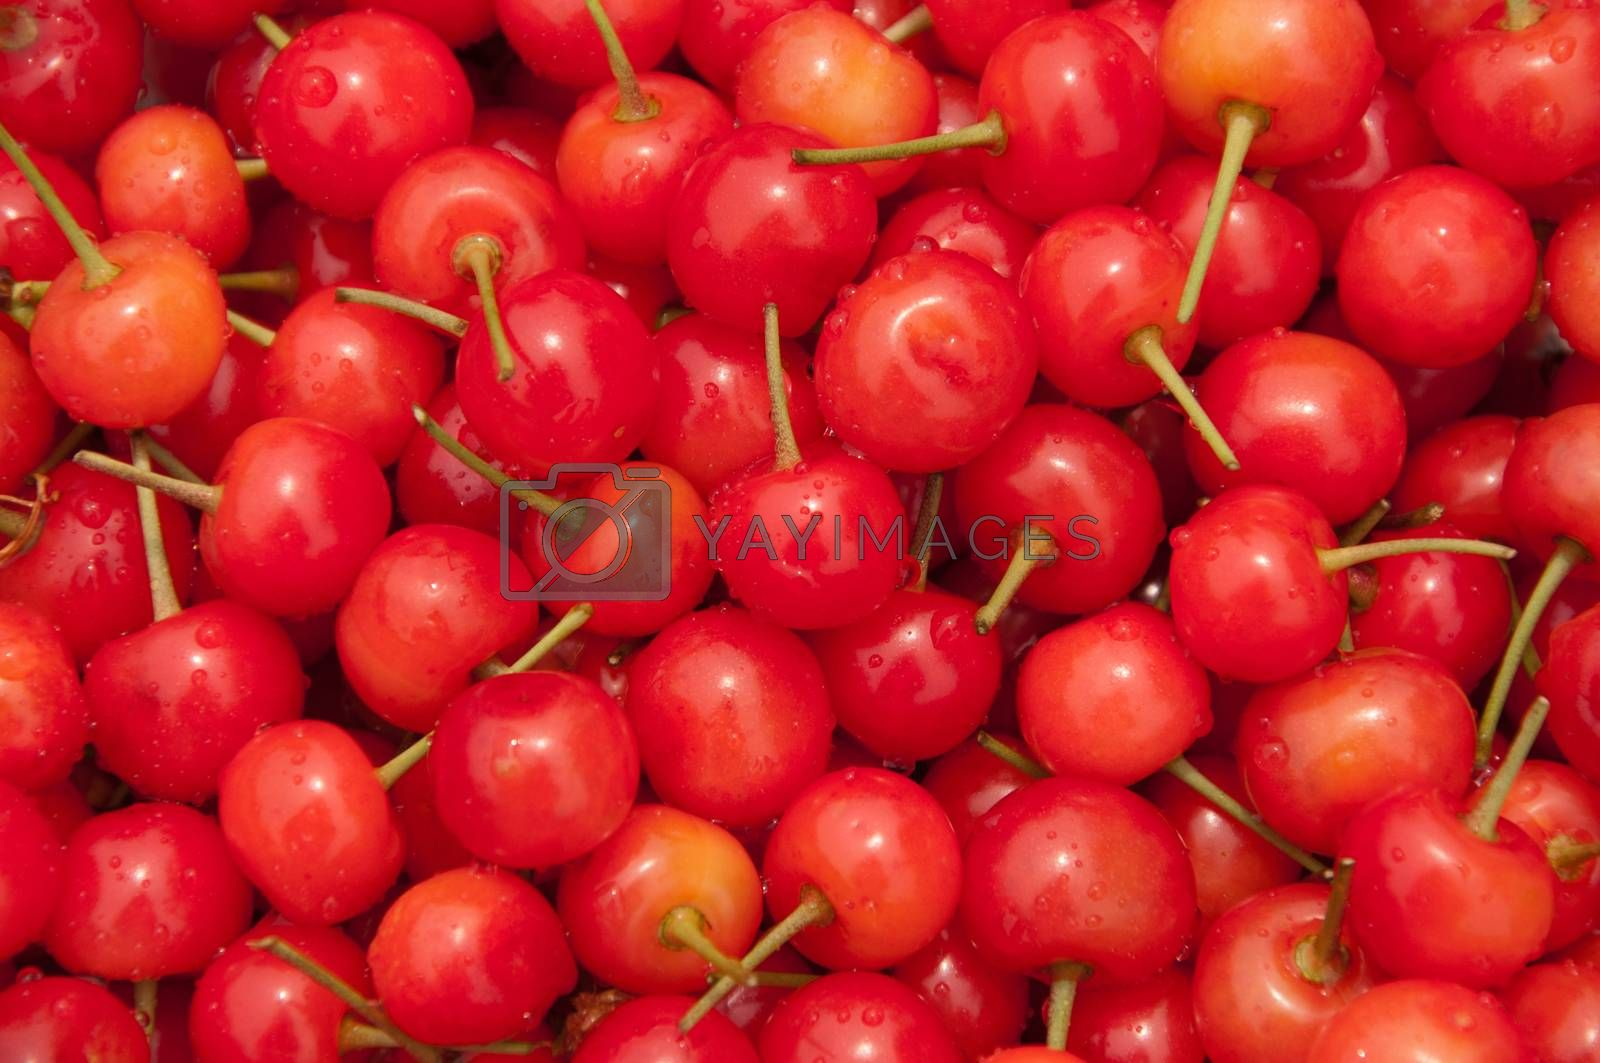 Royalty free image of cherries by jctabb